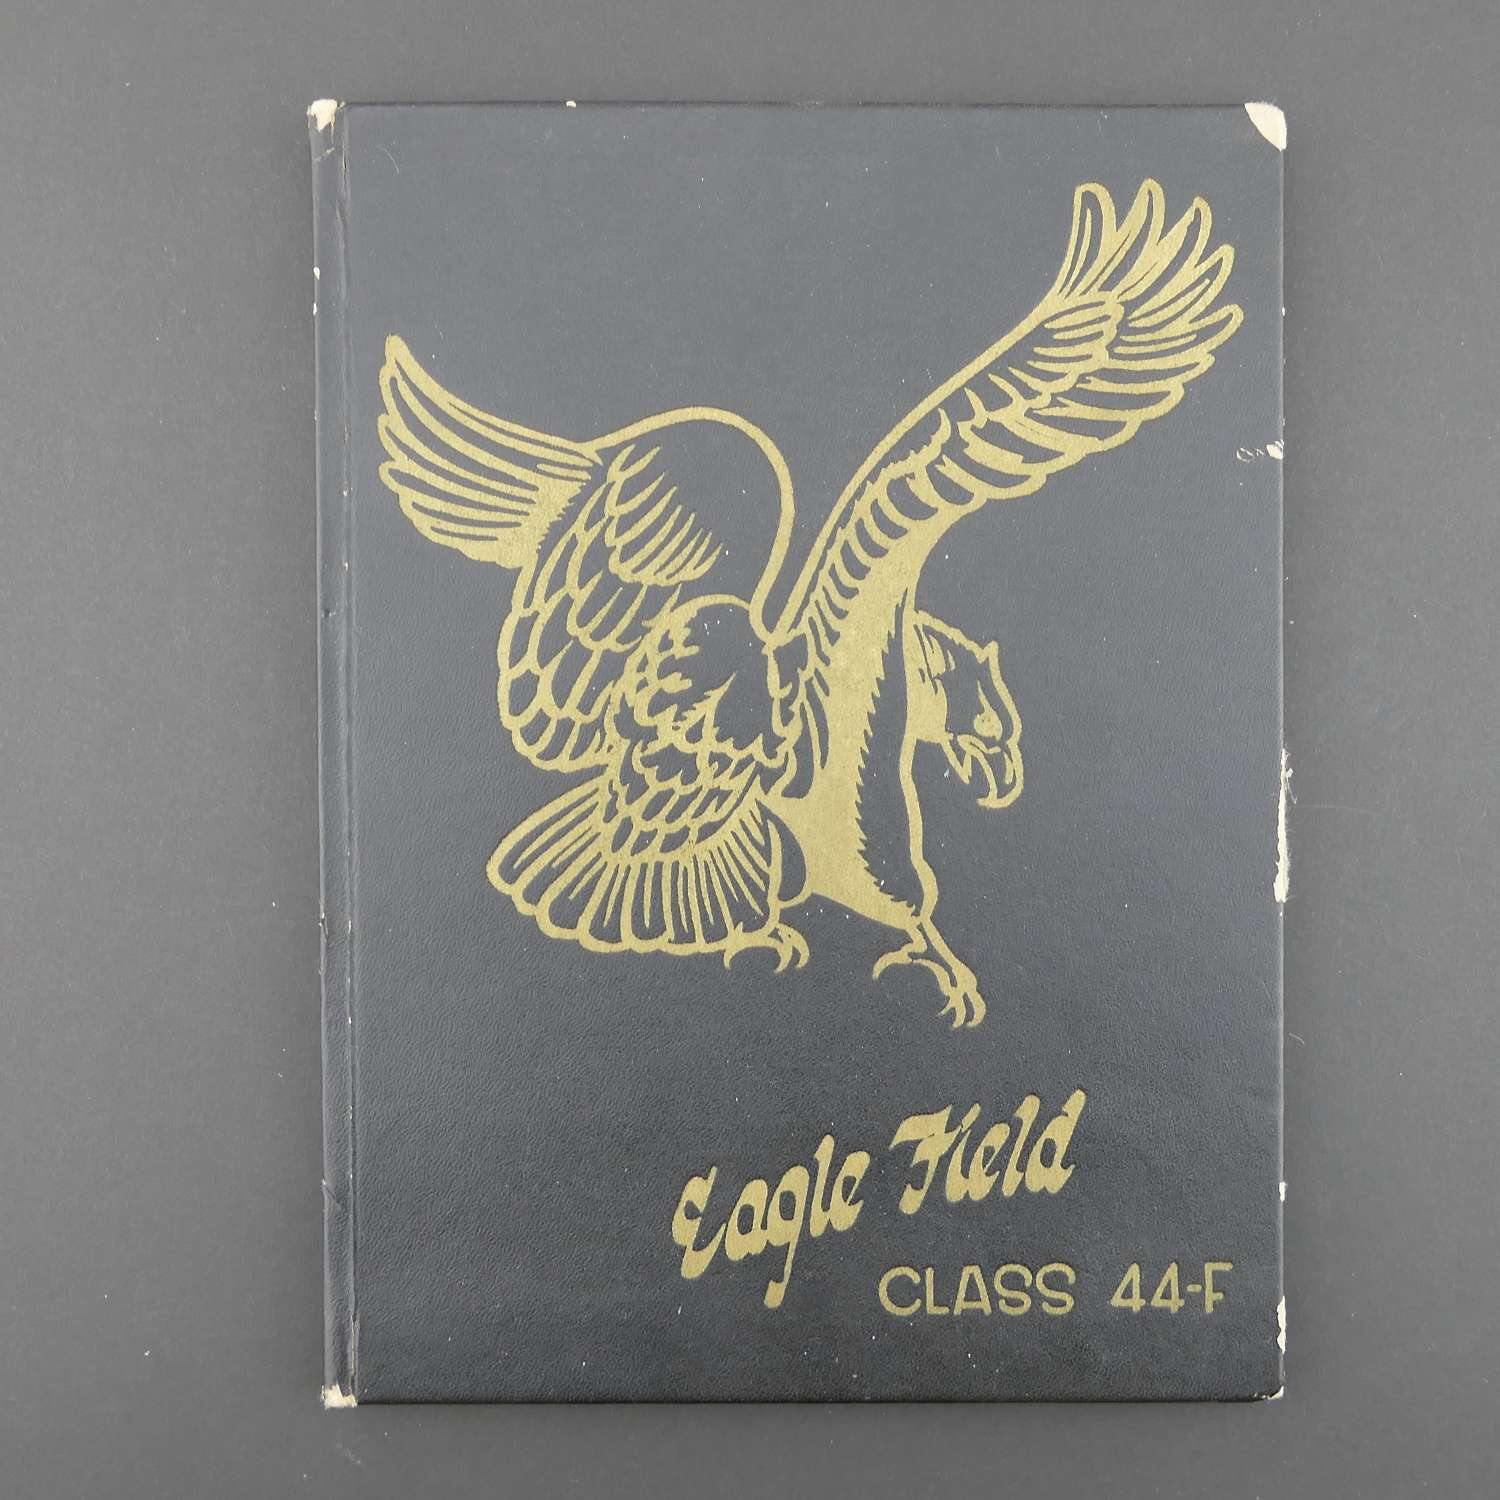 USAAF Eagle Field class yearbook, 1943/4, named